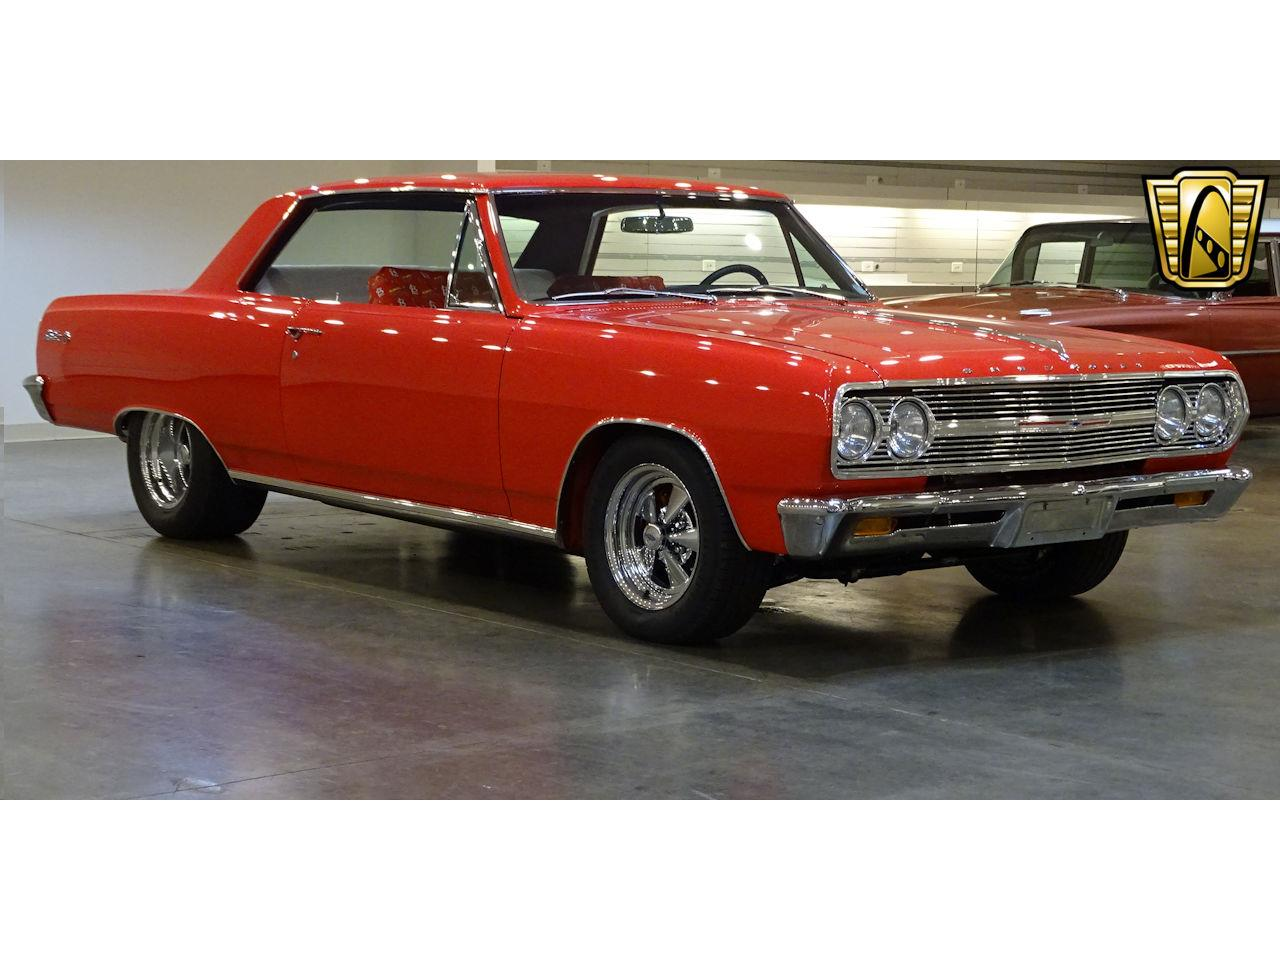 Large Picture of '65 Chevelle - $123,000.00 Offered by Gateway Classic Cars - St. Louis - KE3S